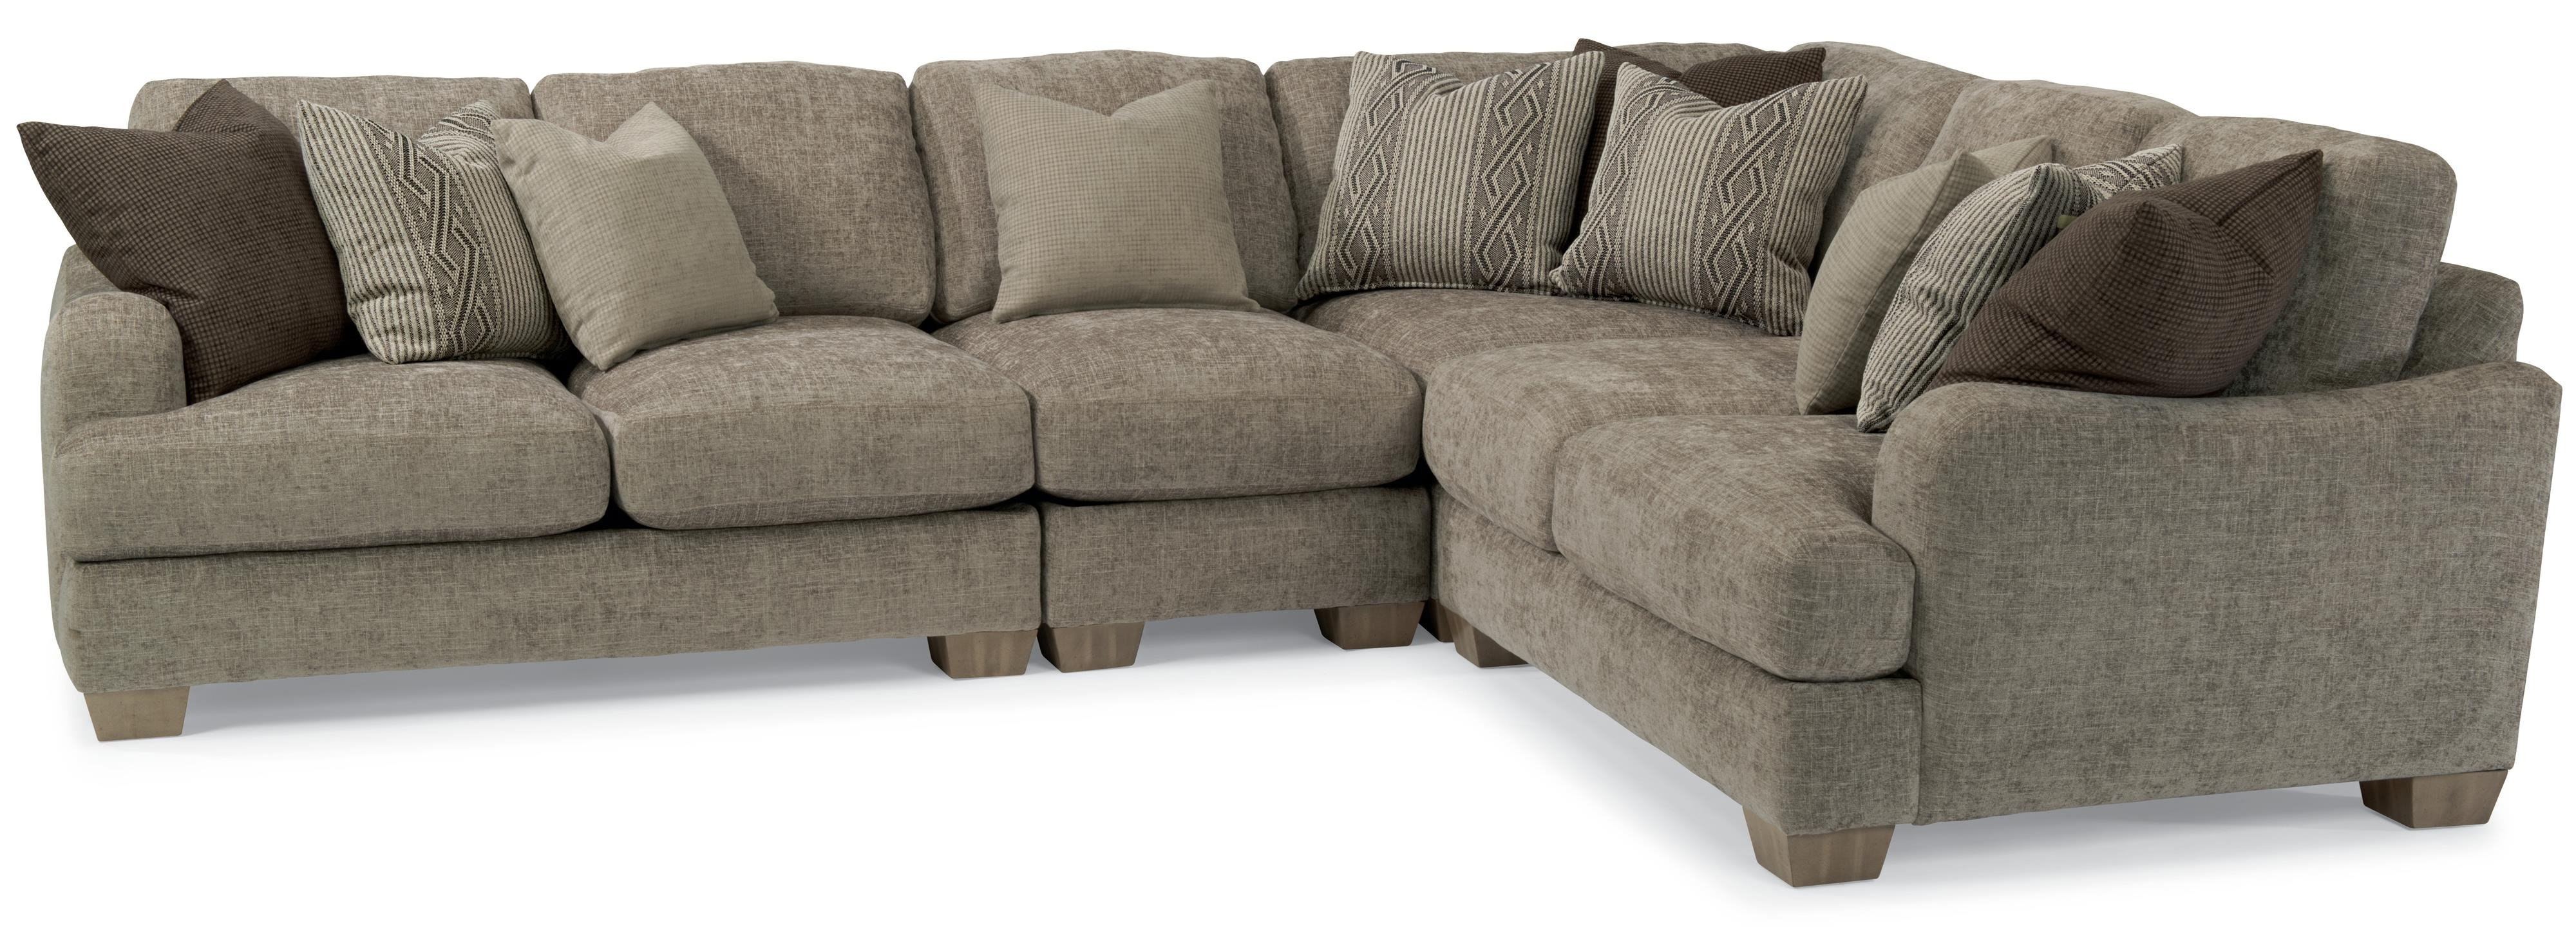 Nova Scotia Sectional Sofas In 2018 Vanessa Sectional Sofa With Loose Pillow Backflexsteel (View 16 of 20)